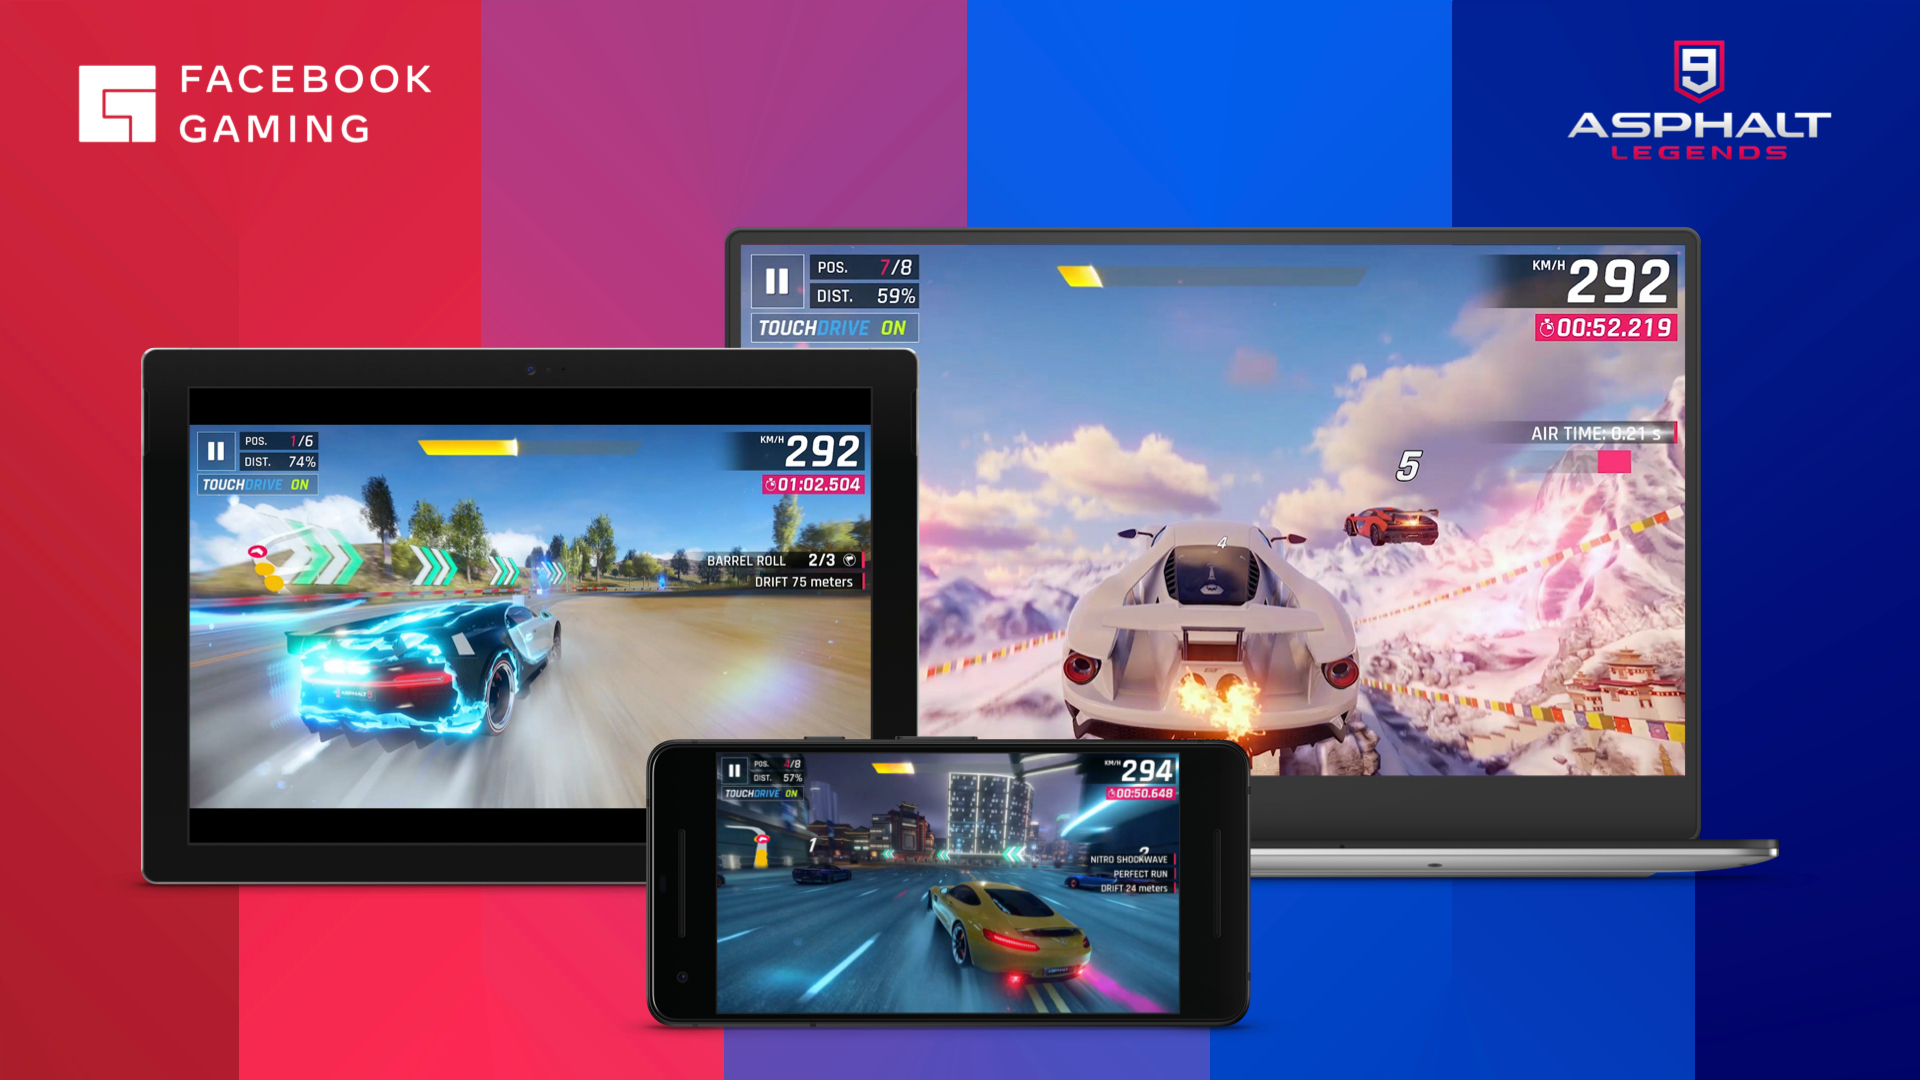 Facebook Cloud Gaming Services